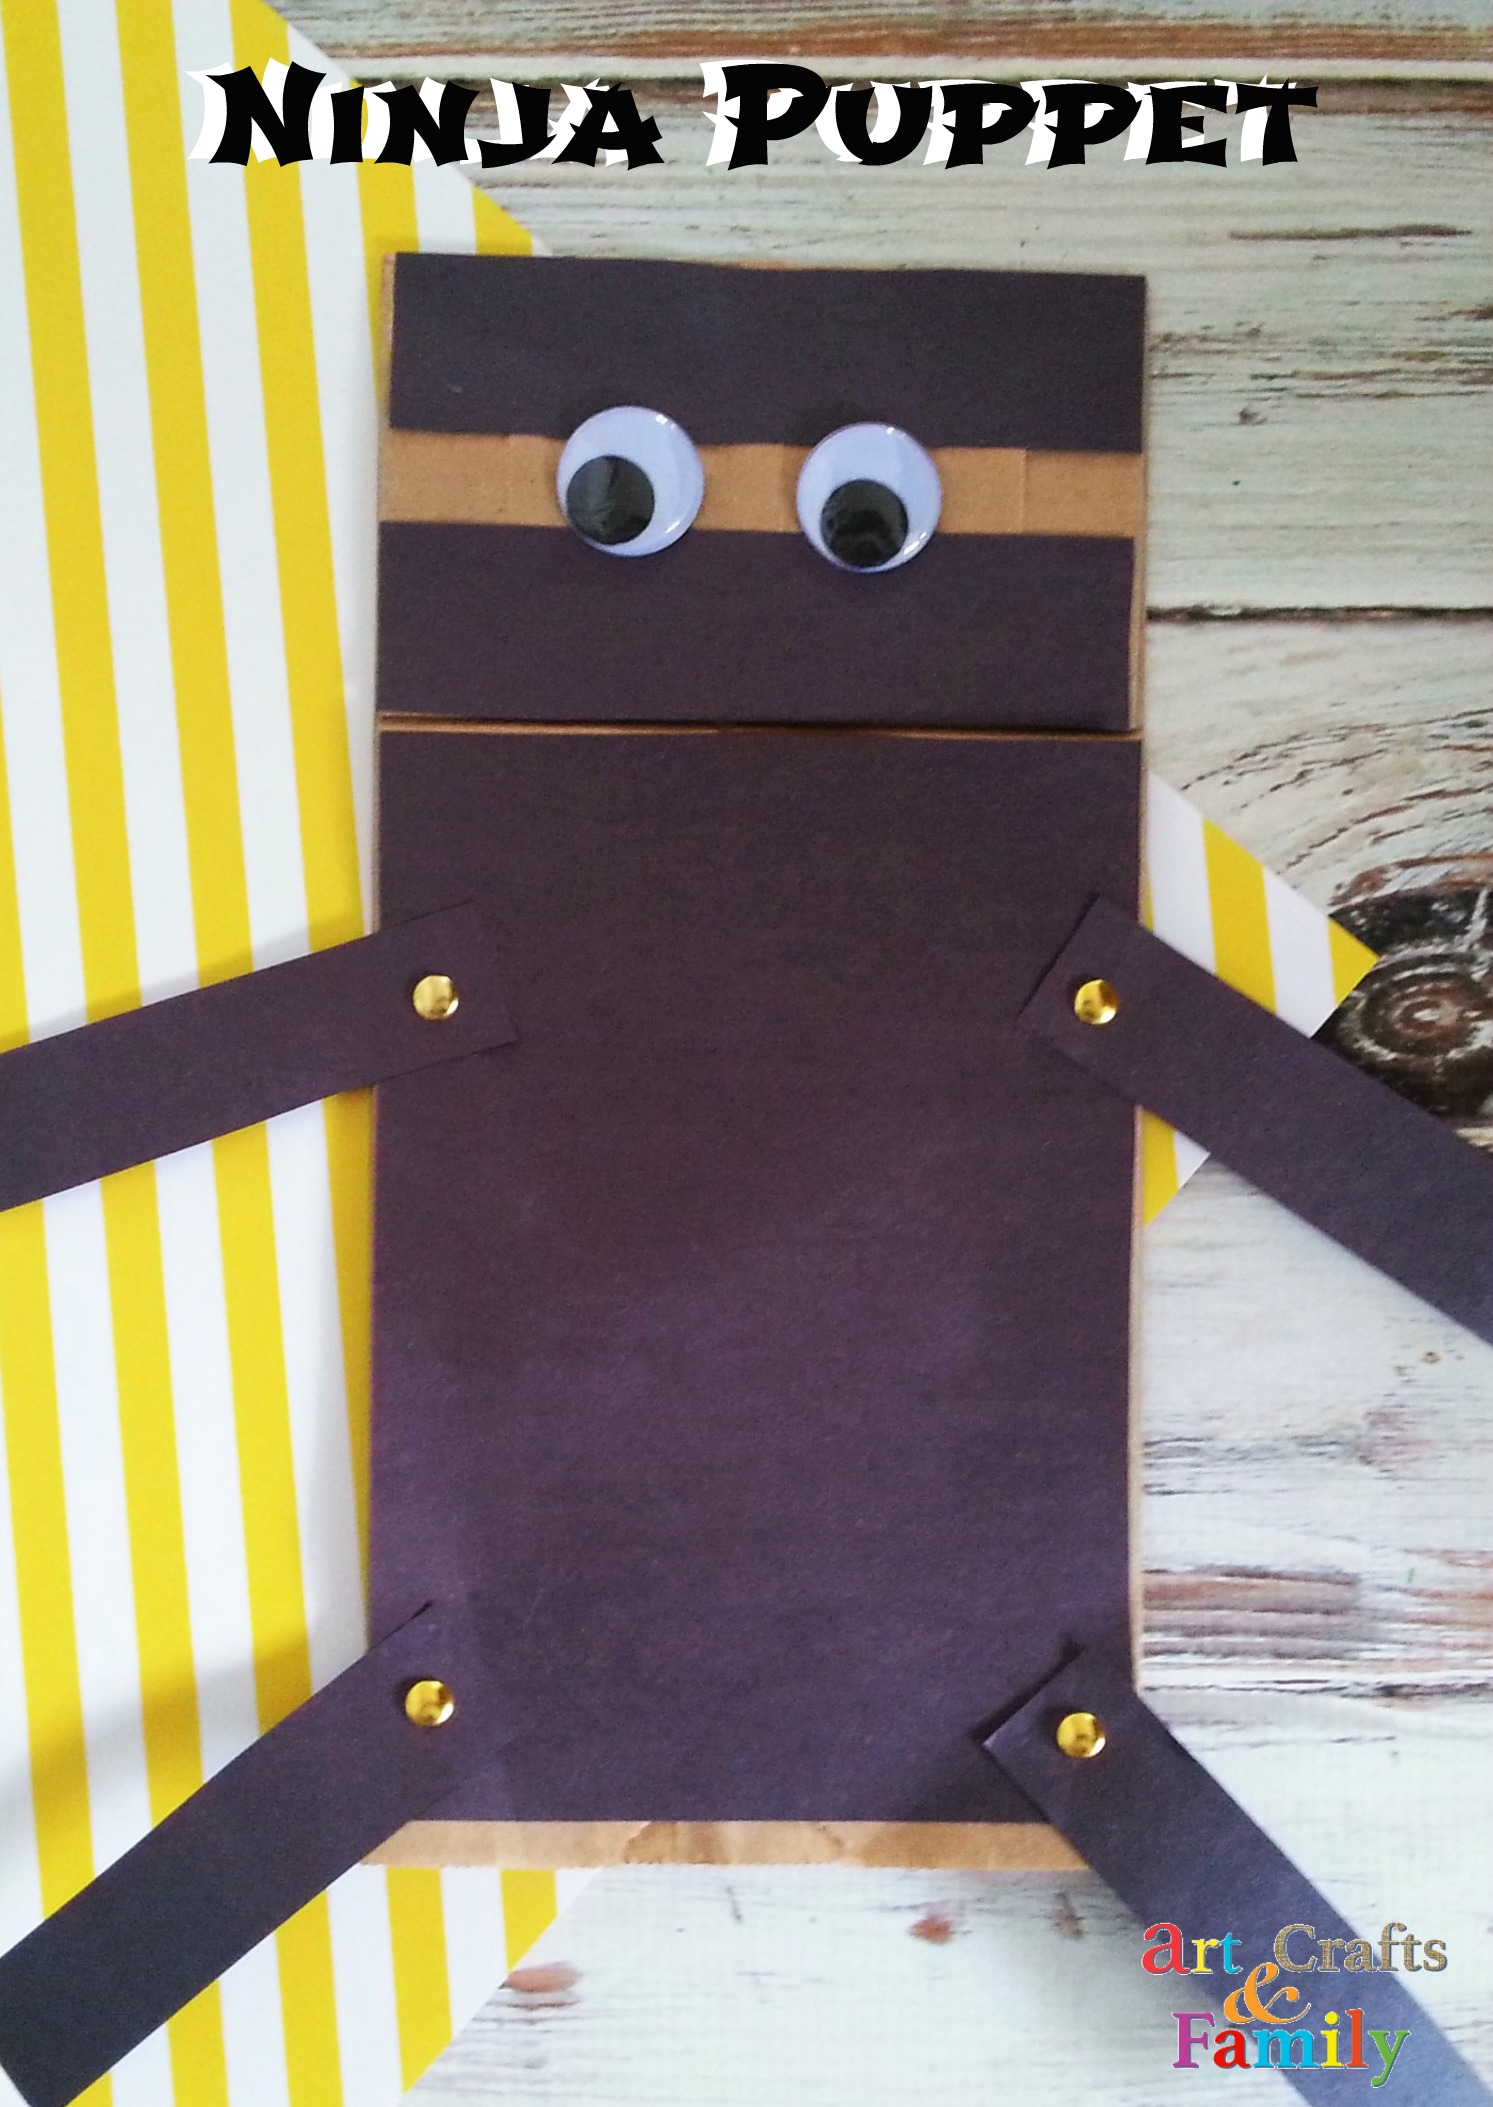 Paper Bag Ninja Puppet Tutorial